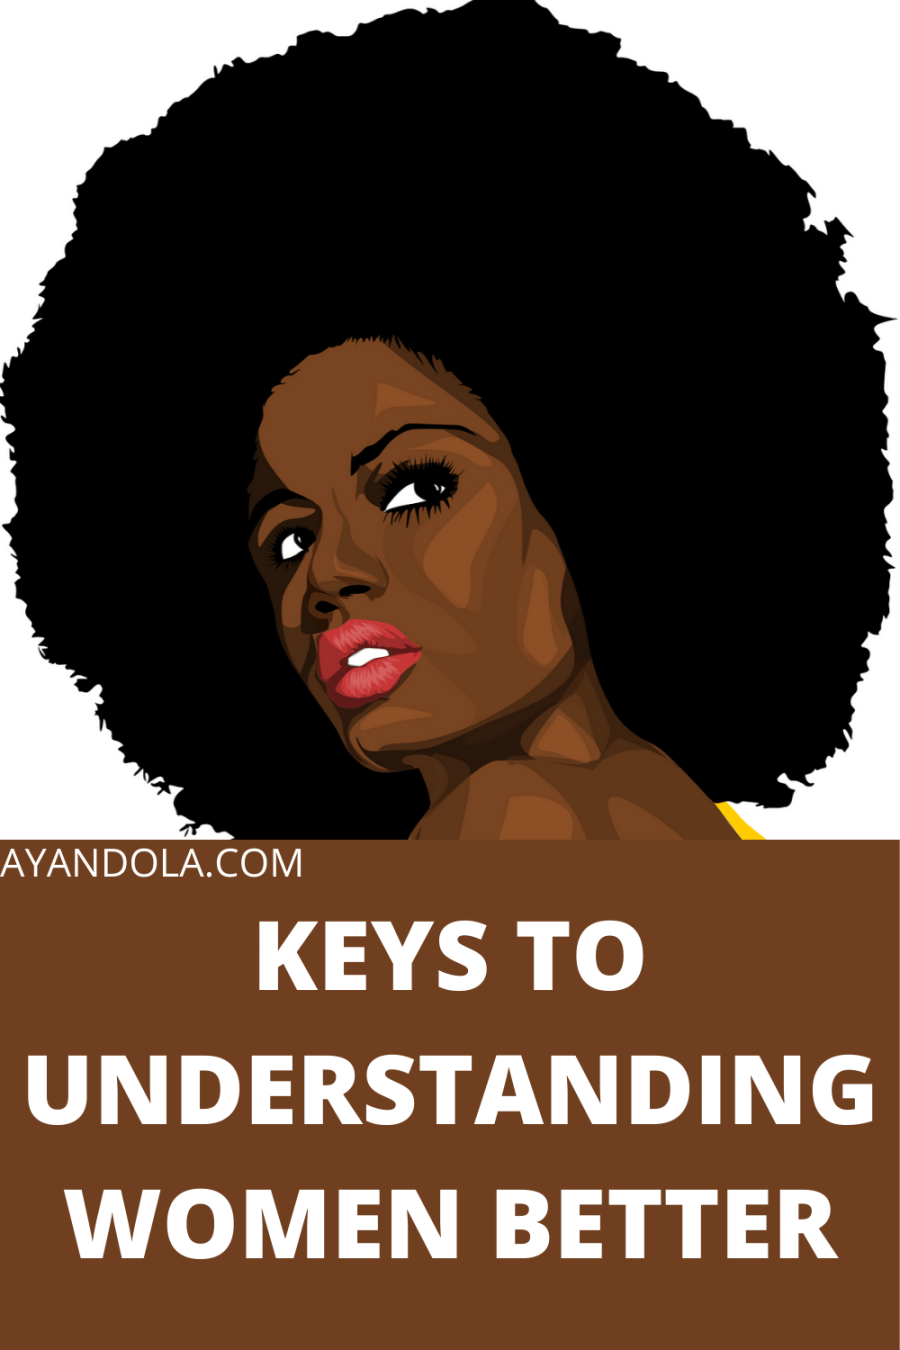 KEYS TO UNDERSTANDING WOMEN BETTER